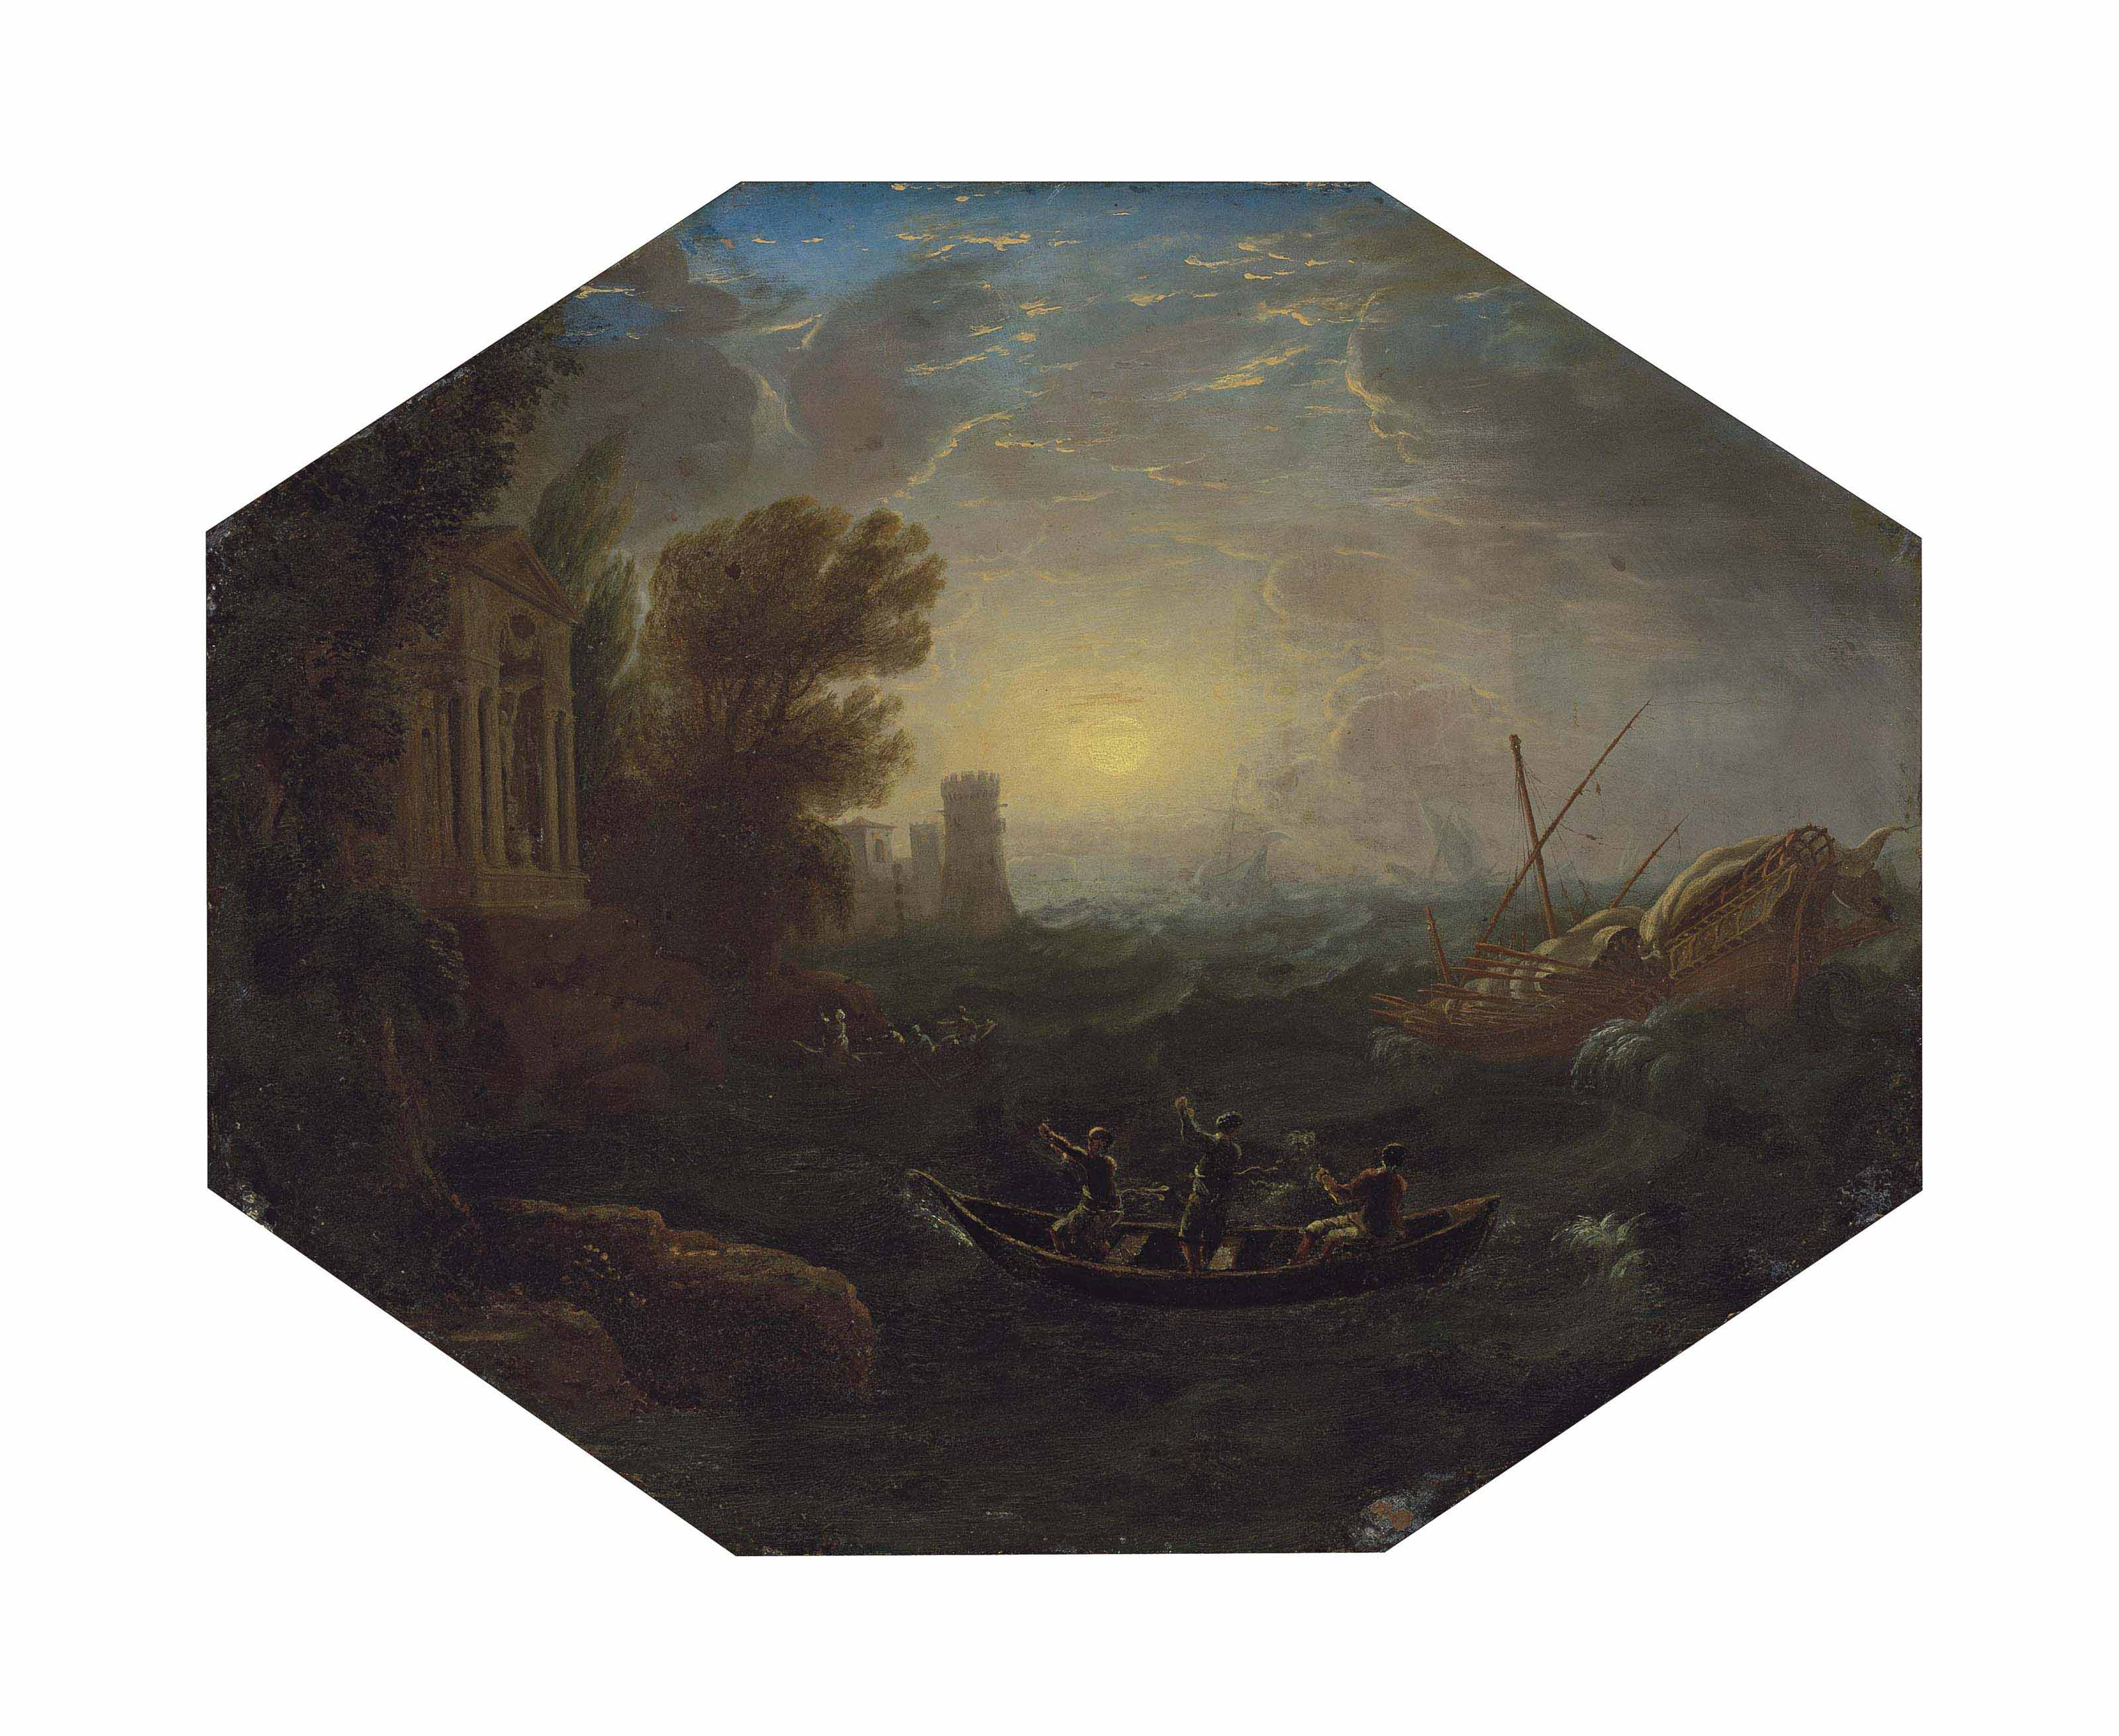 La Tempête: A Mediterranean costal landscape with rowing boats and a galley in rough seas, a seaside temple and a tower, other vessels beyond